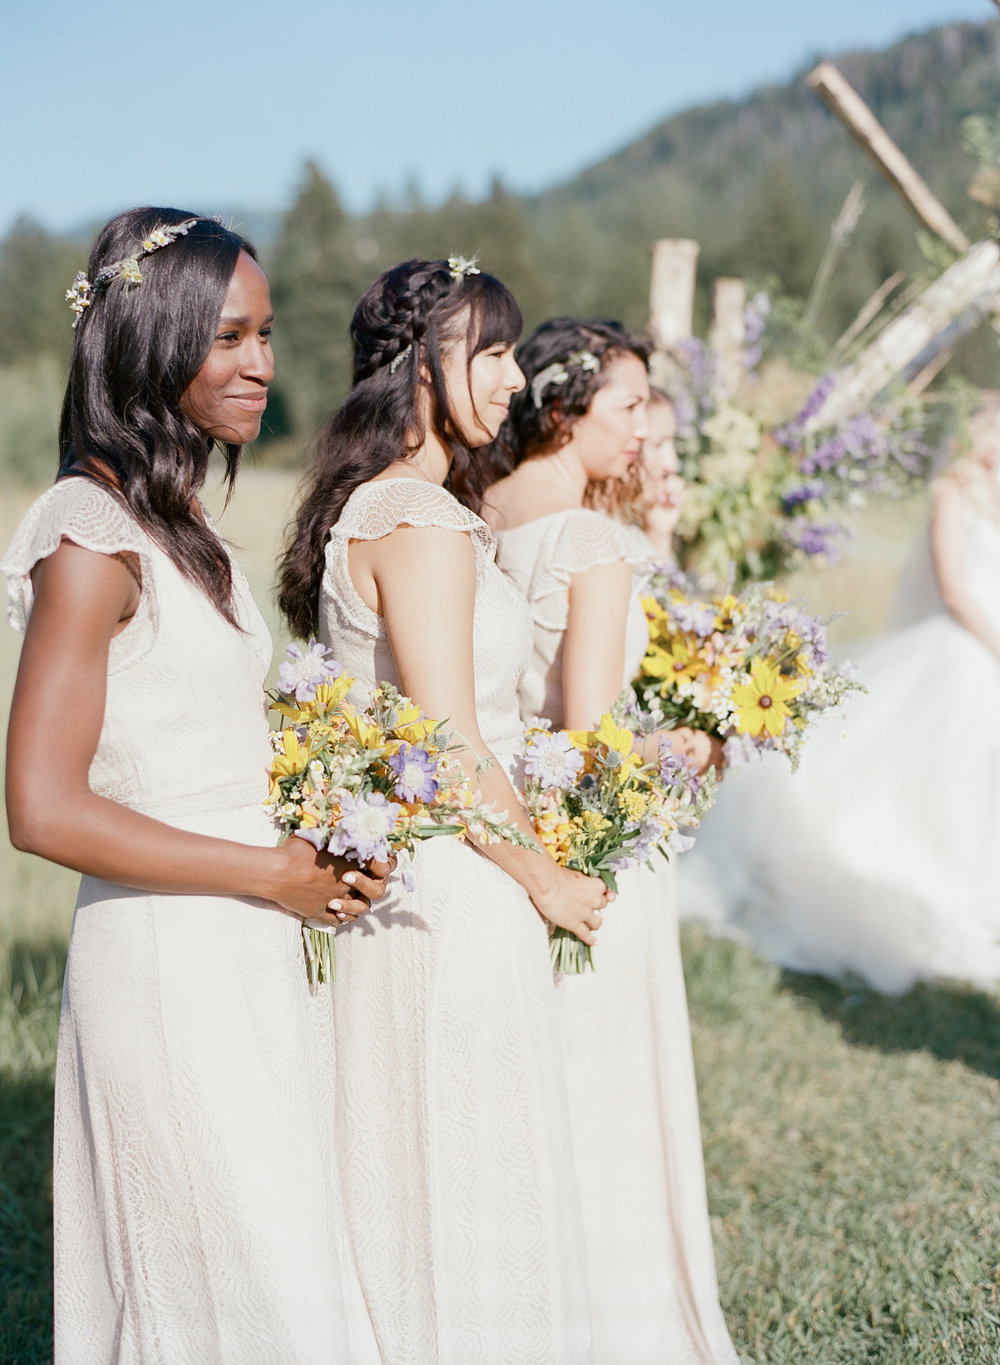 Bridal party during the ceremony with sunflower wildflower bouquets, Diverse bridesmaids, African American bridesmaid, black bridesmaid, Sylvie Gil Photography